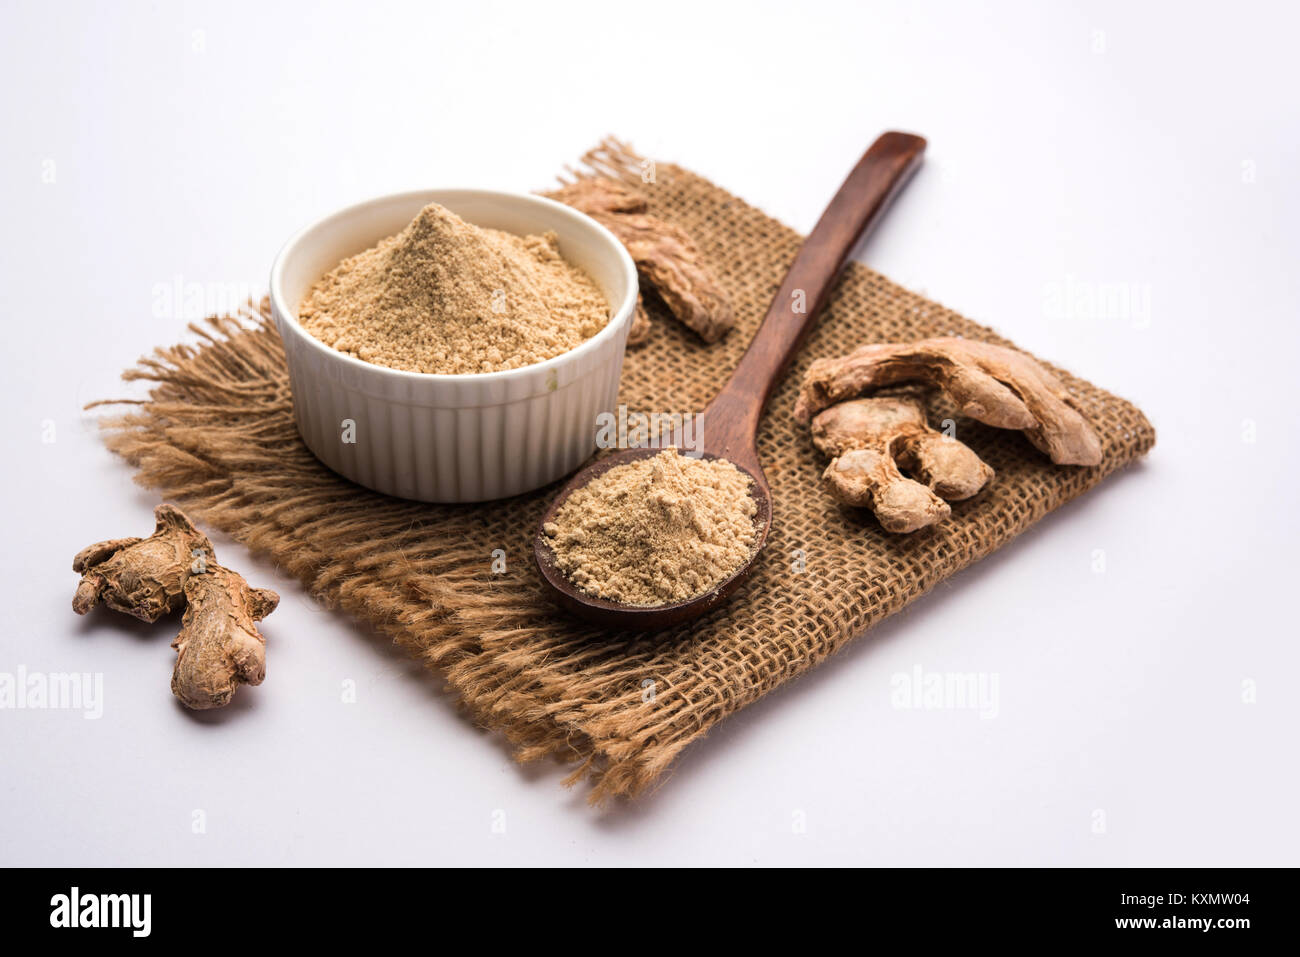 Ginger powder with dried Ginger also known as Sunth or Sonth in India - Stock Image